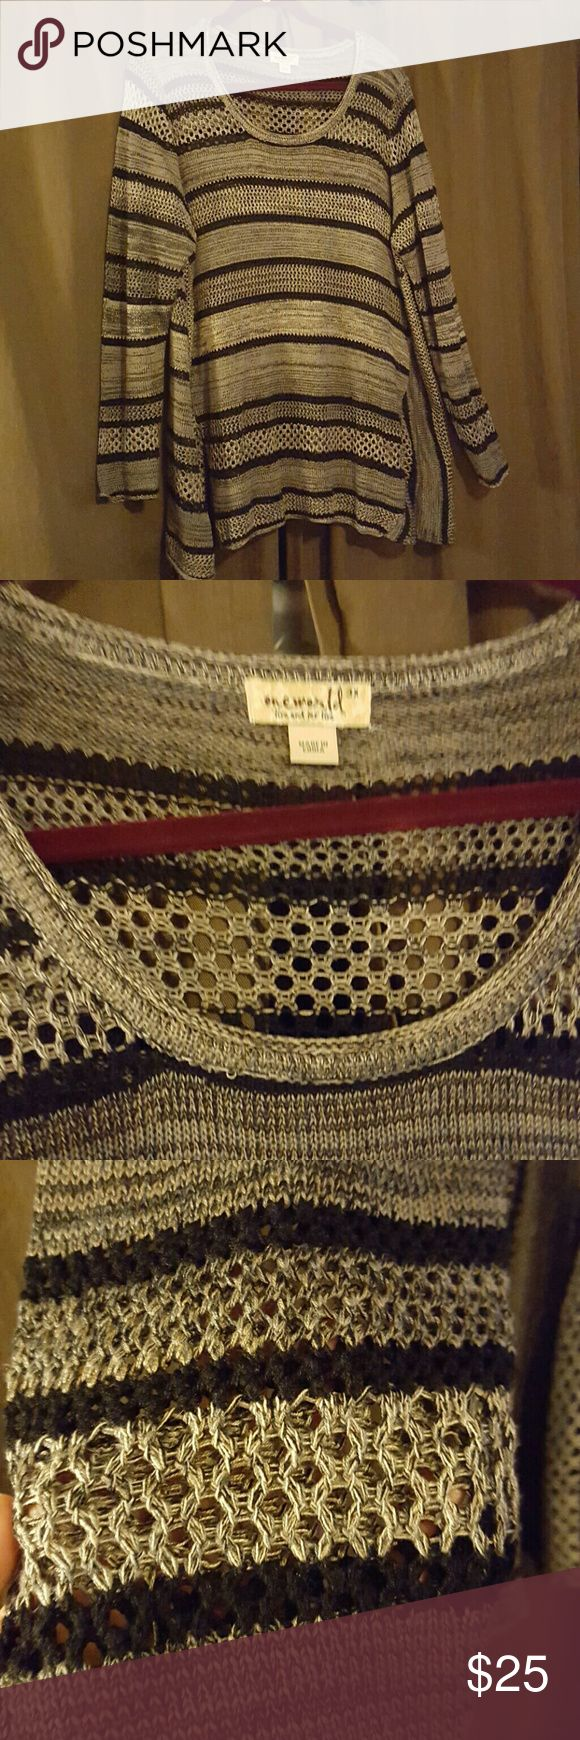 One World plus sz. 3X loose knit sweater This is a cute long sleeve loose knit sweater from one world. It is black and grey striped. It is a plus size 3x and is true to size. It has a shark bite hem and is in great condition ONE WORLD Sweaters